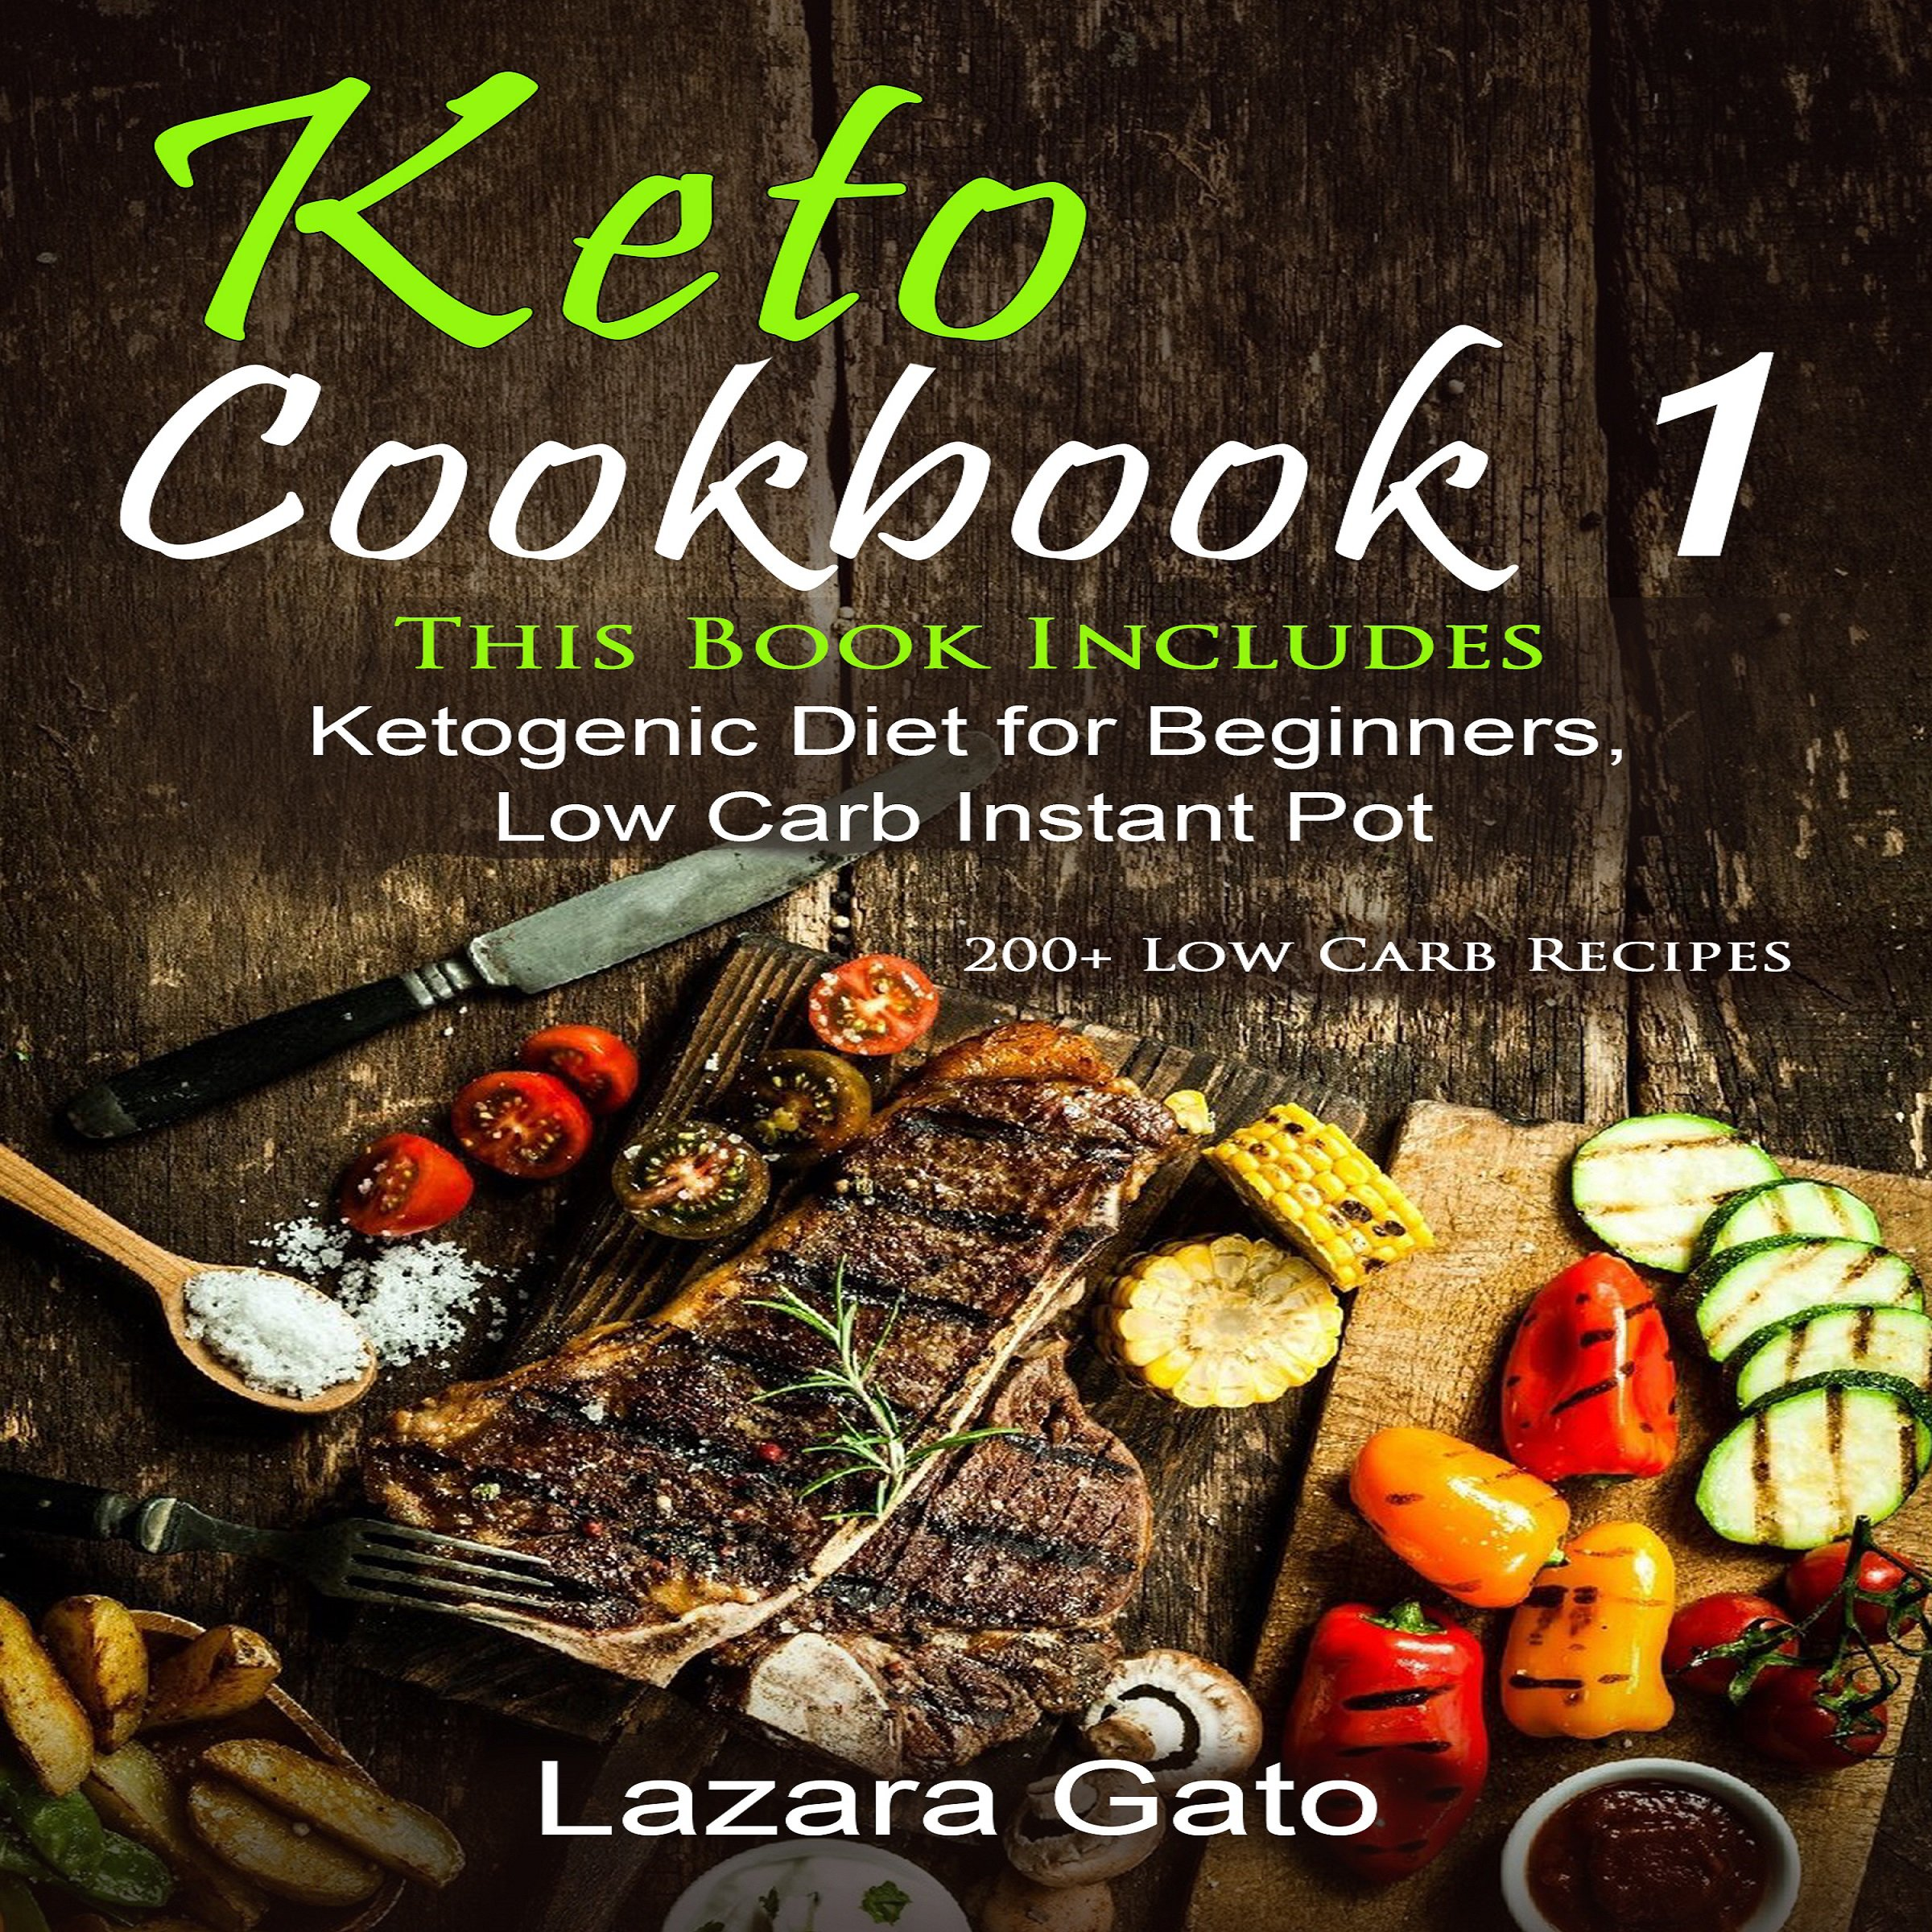 Keto Cookbook 1: This Book Includes Ketogenic Diet for Beginners, Low Carb Instant Pot